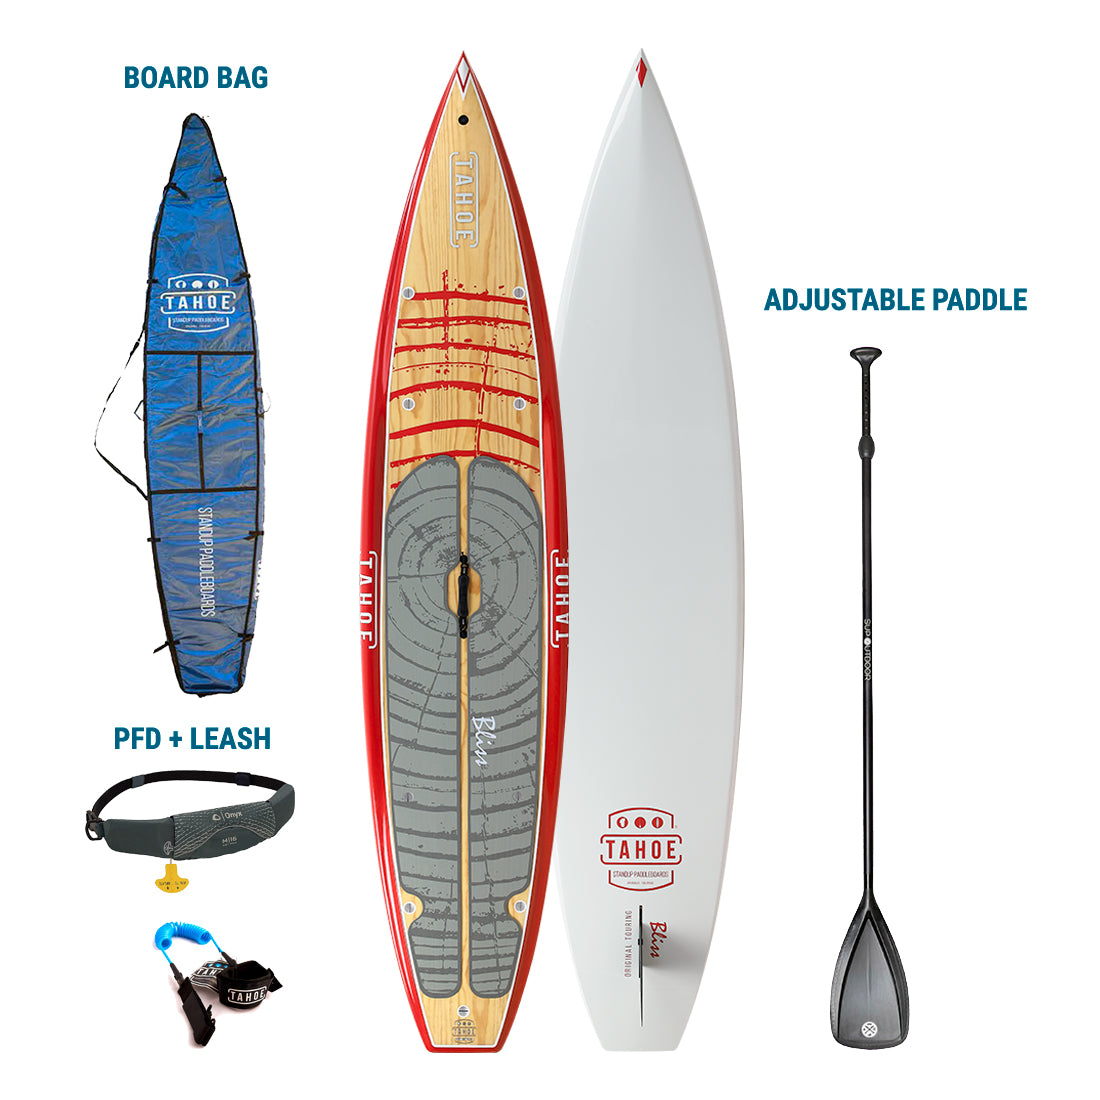 TRUCKEE/AUBURN RENTAL: Tahoe SUP Bliss Premium Stand Up Paddleboard + Board Bag + Paddle + Leash/PFD Rental 4theoutdoors America US USA SUP outdoors